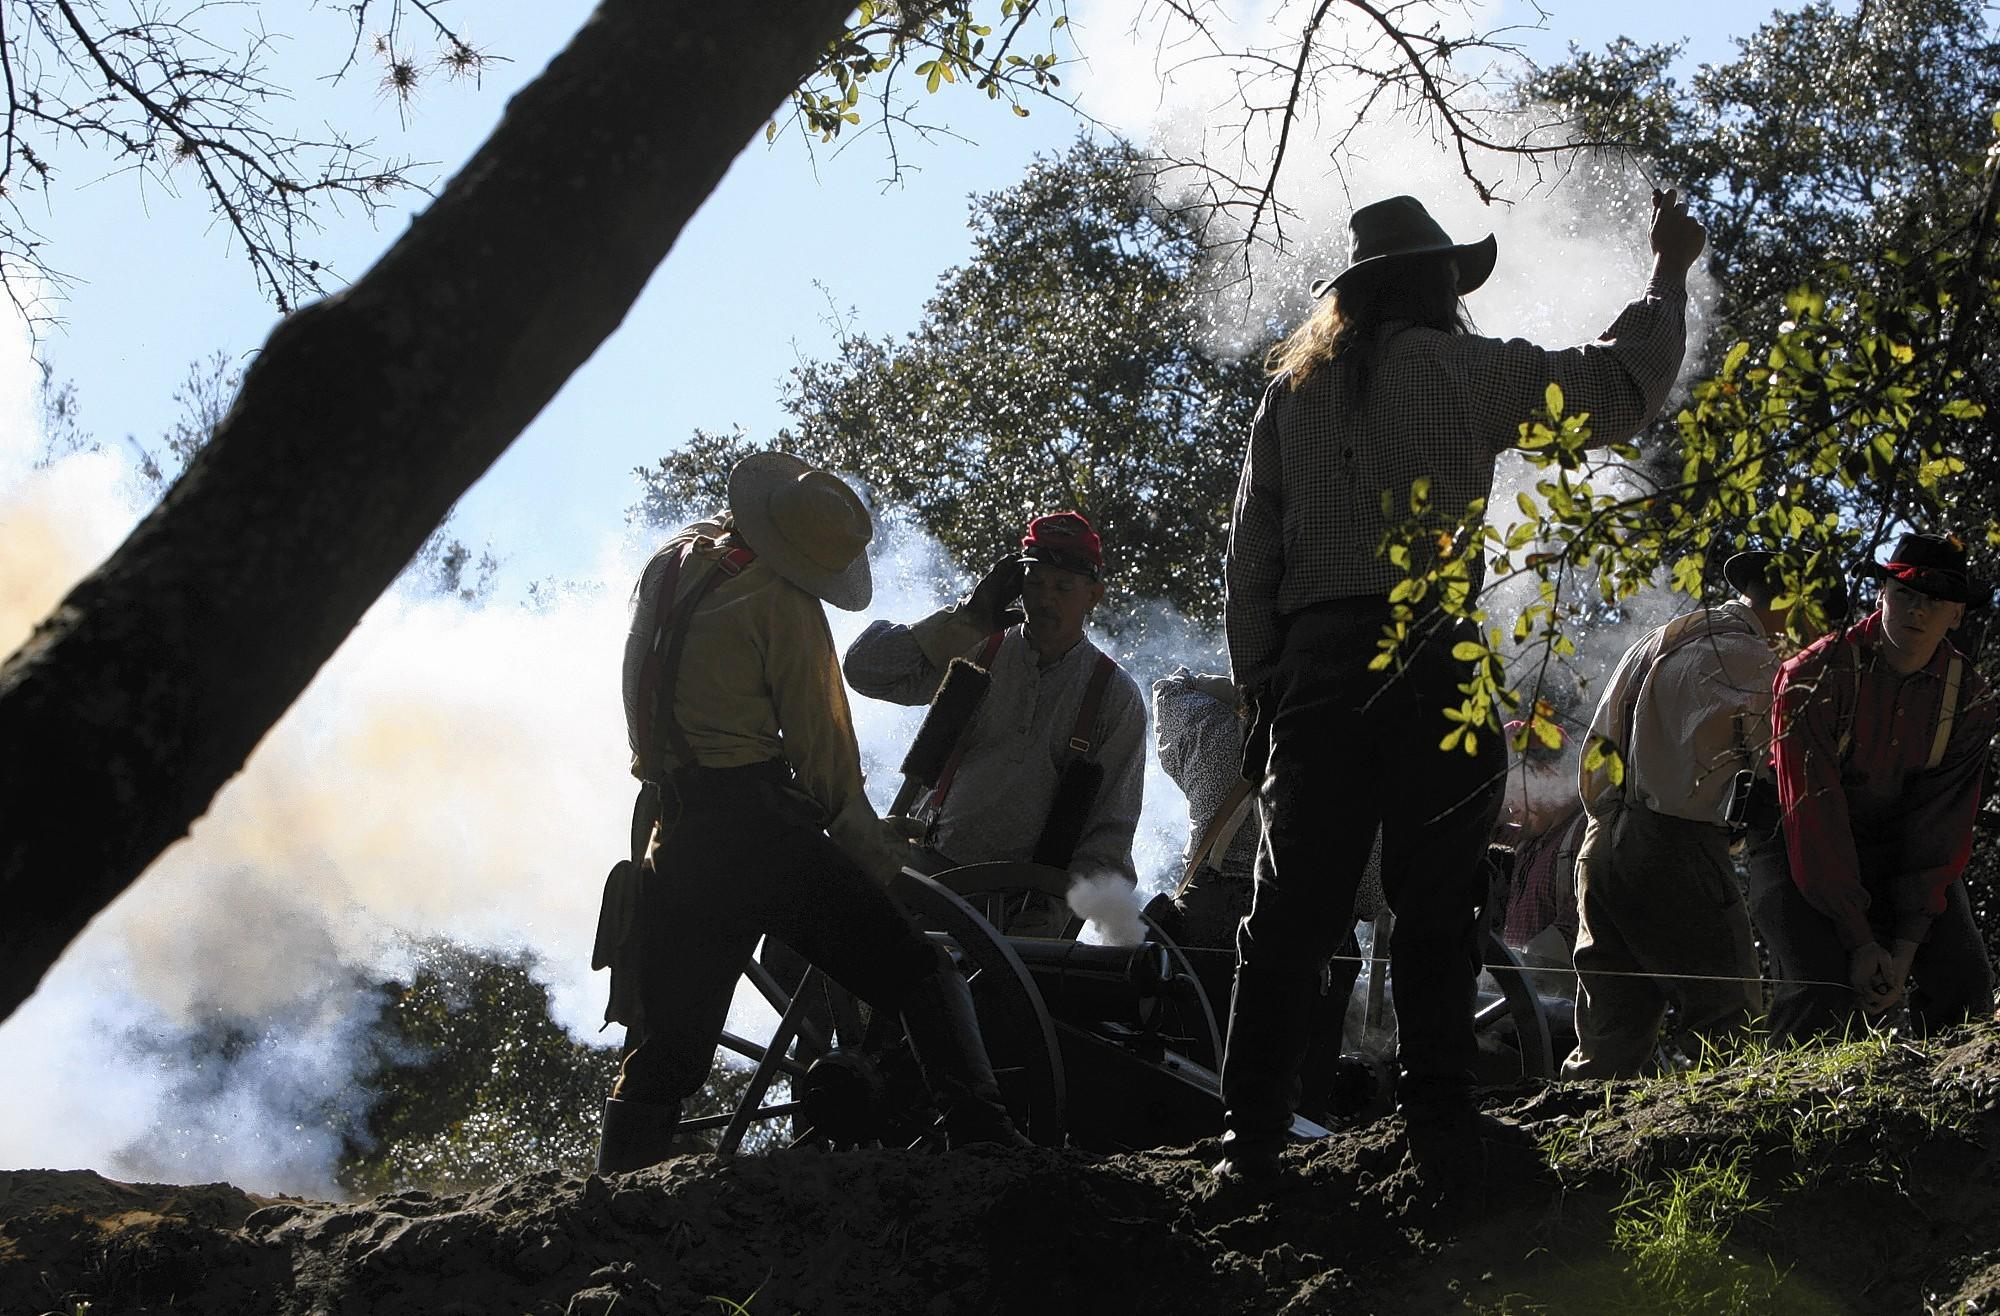 A Confederate light artillery unit fires a cannon Saturday. Civil War re-enactors took part in the annual Battle of Townsend's Plantation Saturday and Sunday at Renninger's Antique Center in Mount Dora.